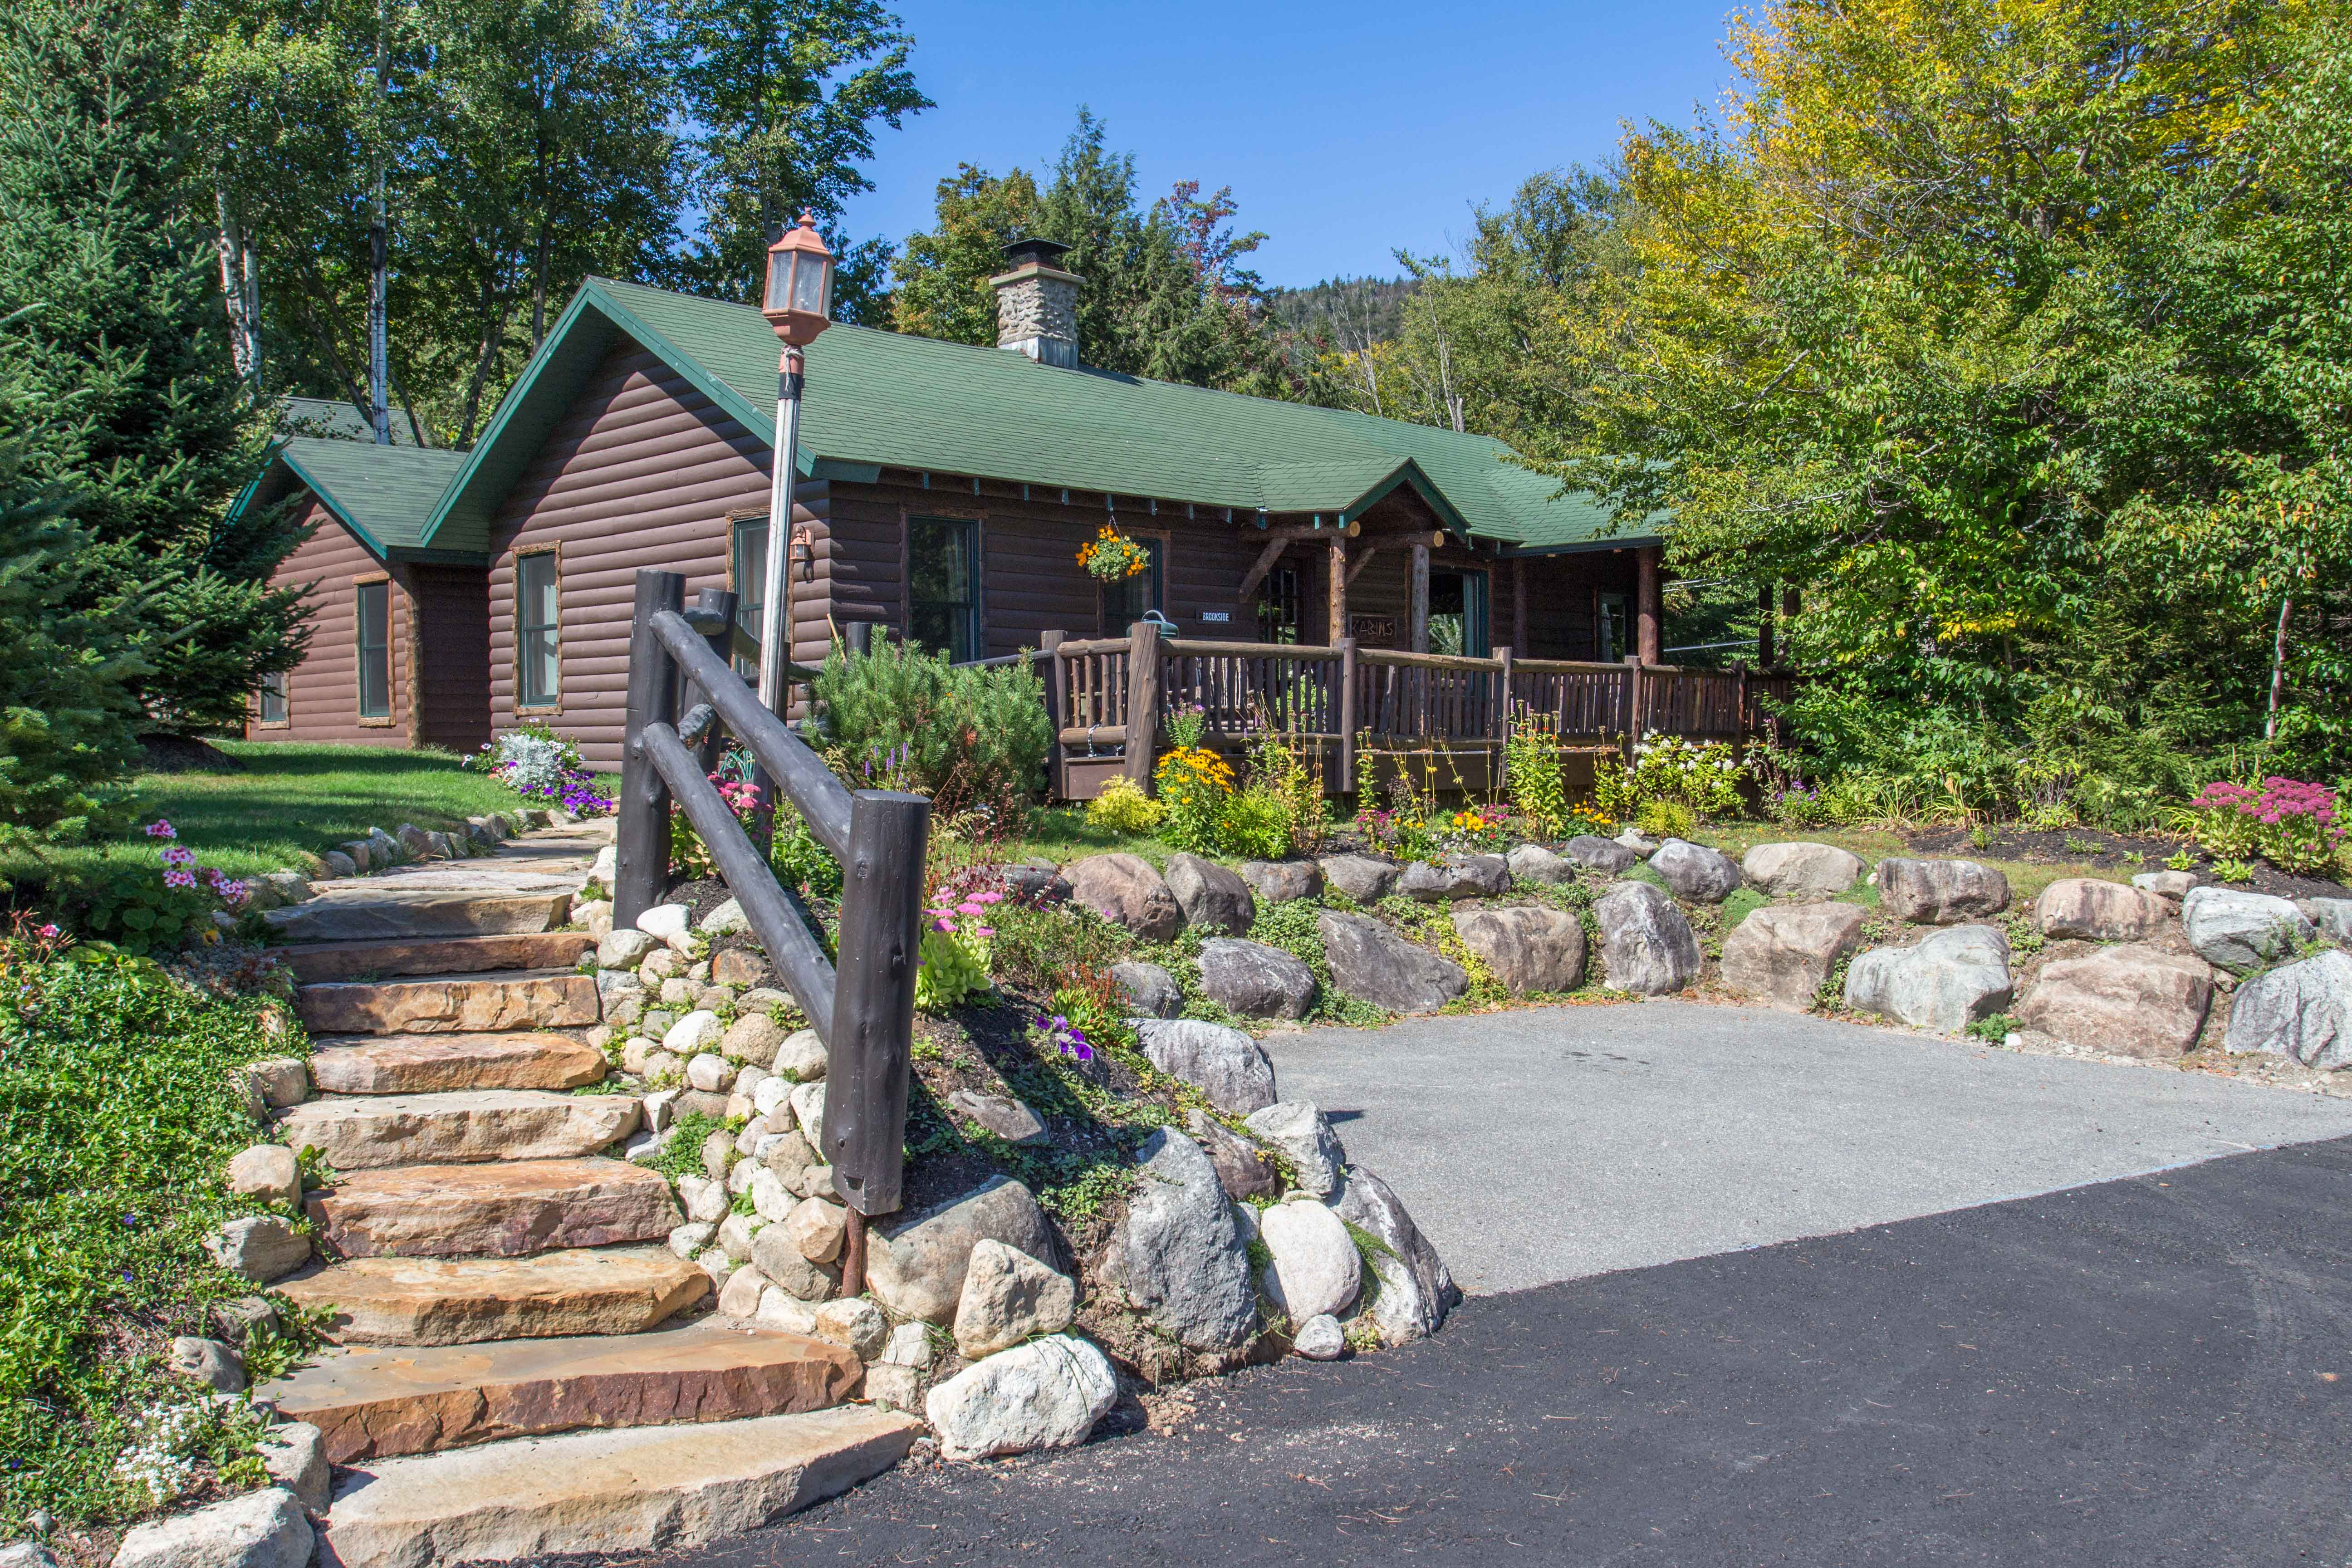 rentals door pleasant watersedge lake units ny adirondack pin mountains for my our waters property adirondacks cottages rental with cabin cabins in next edge summer to